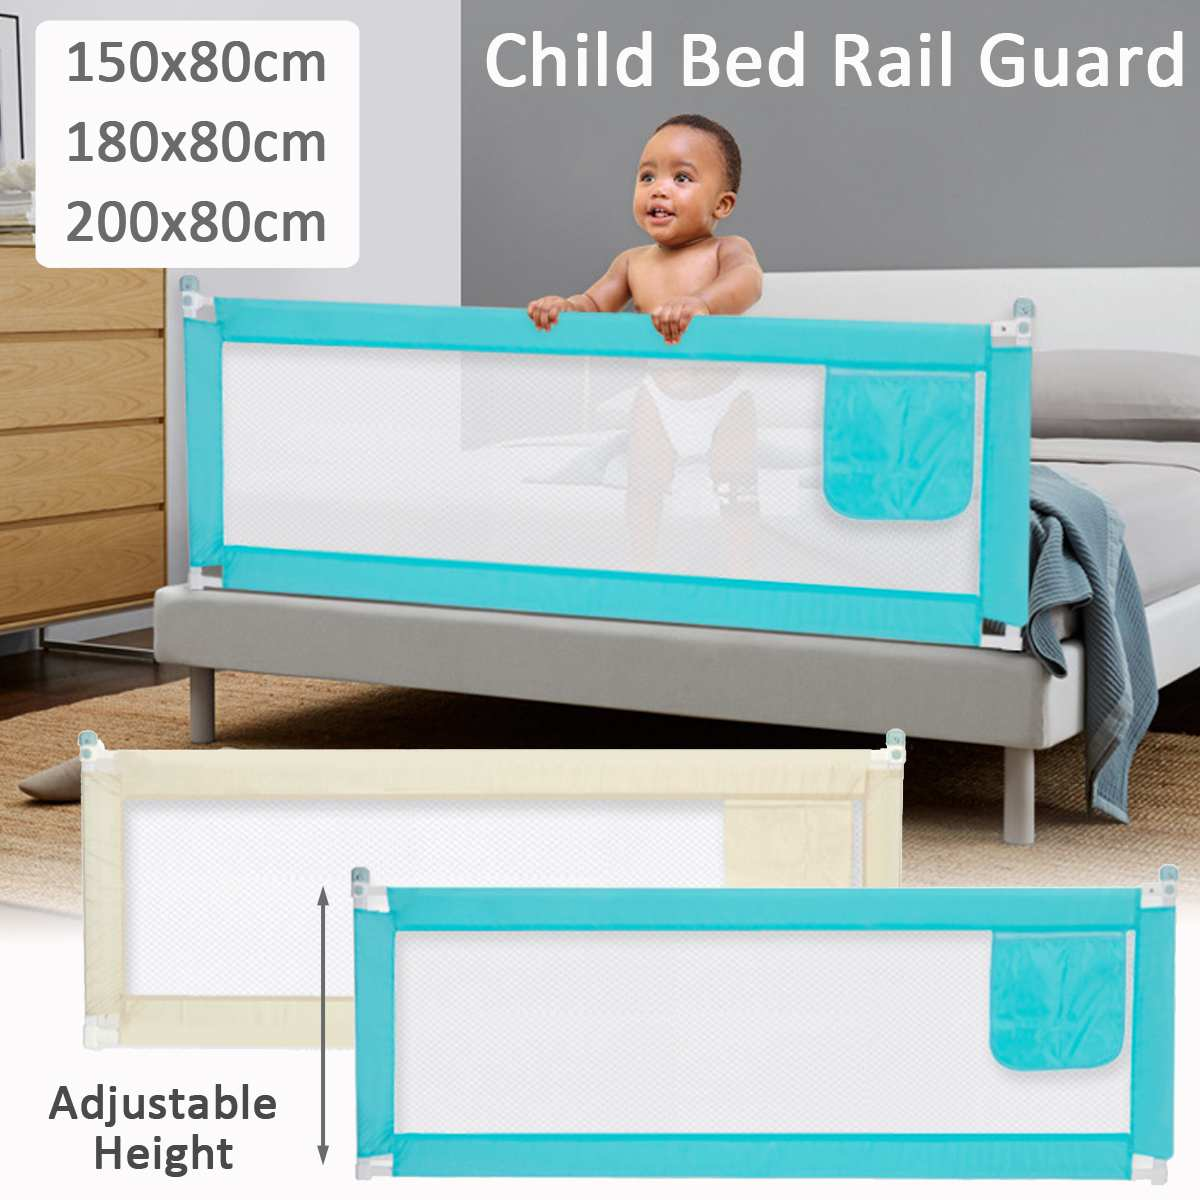 Baby Bed Fence Home Kids Playpen Safety Gate Products Child Care Barrier For Beds Crib Rails Security Fencing Baby Safe Guard